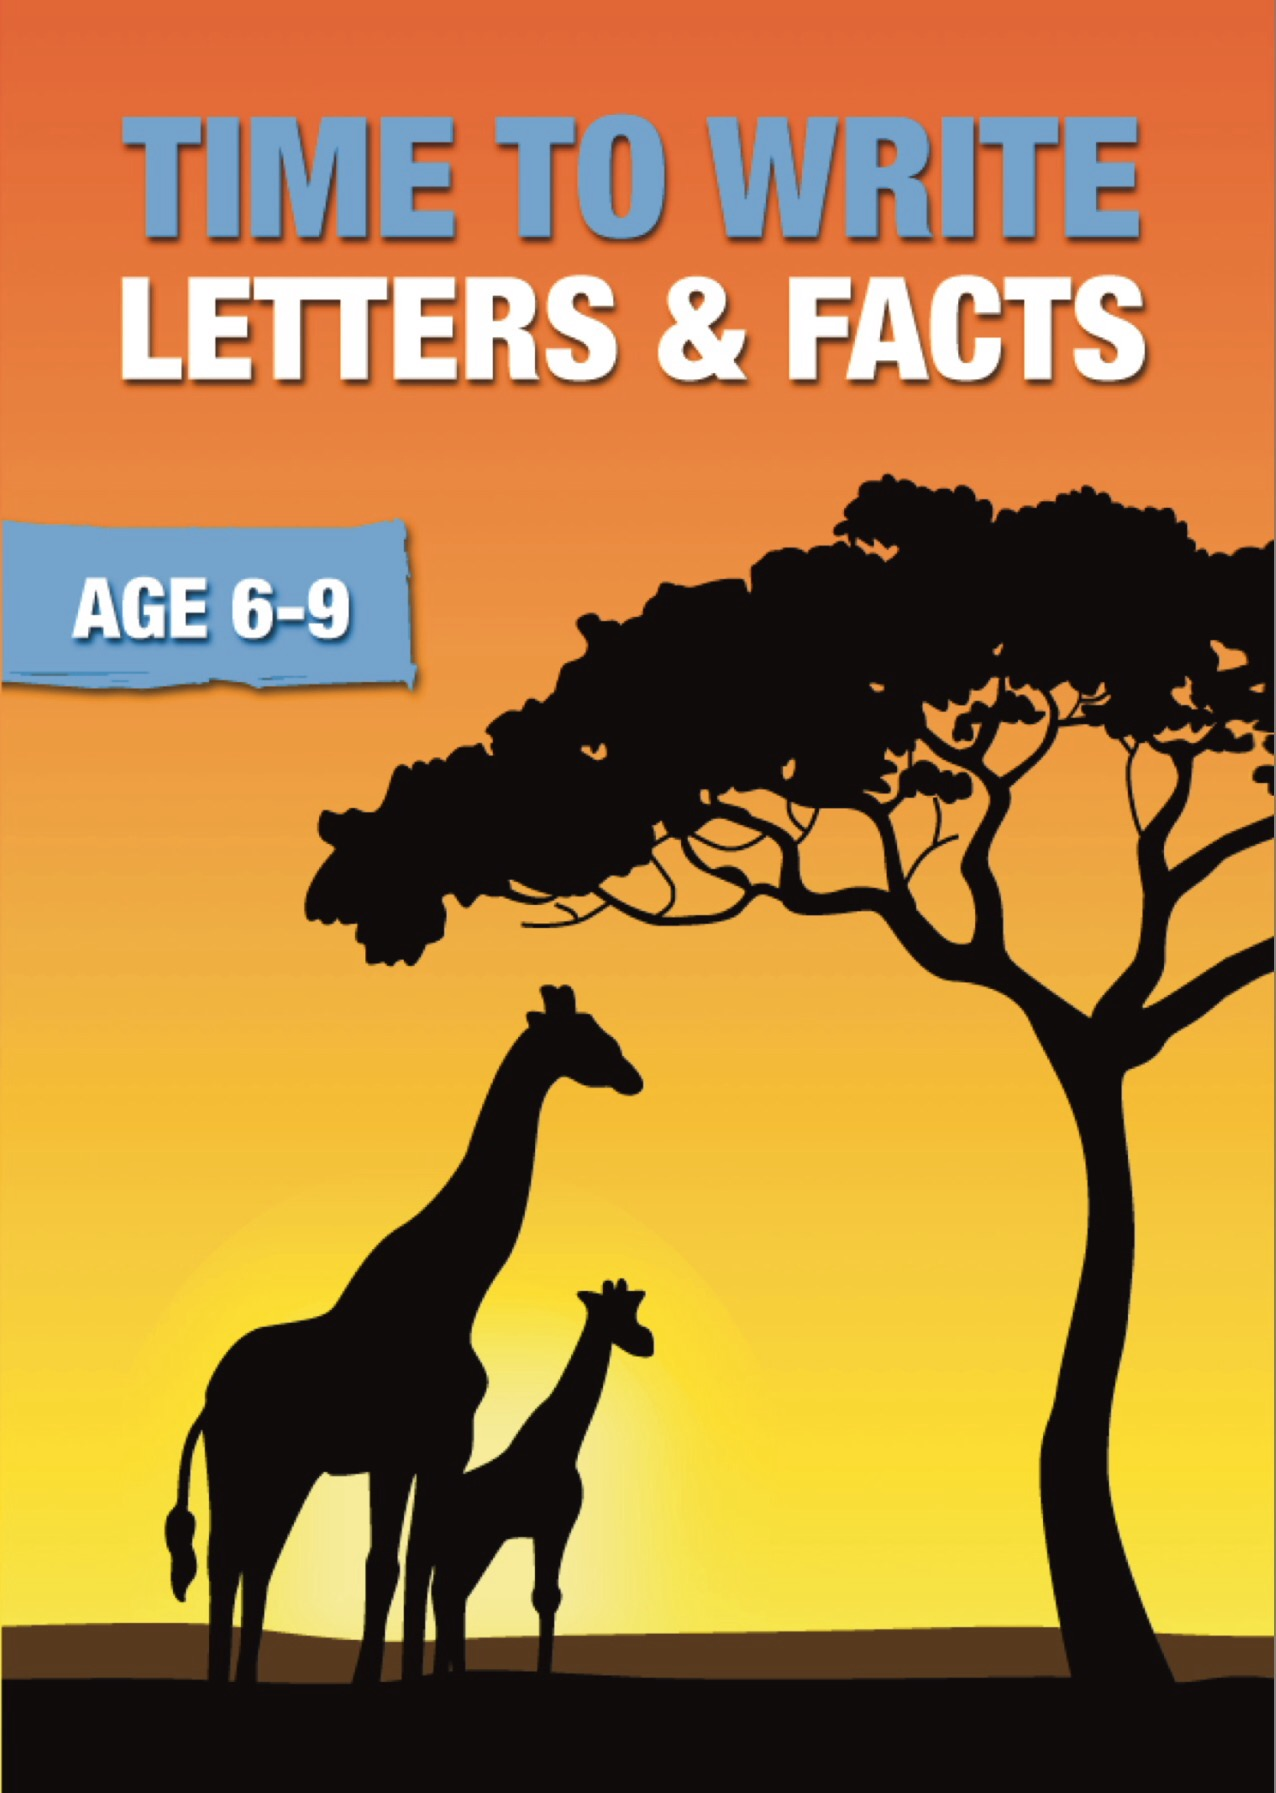 Time To Write Letters And Facts (6-9 years) Digital Download